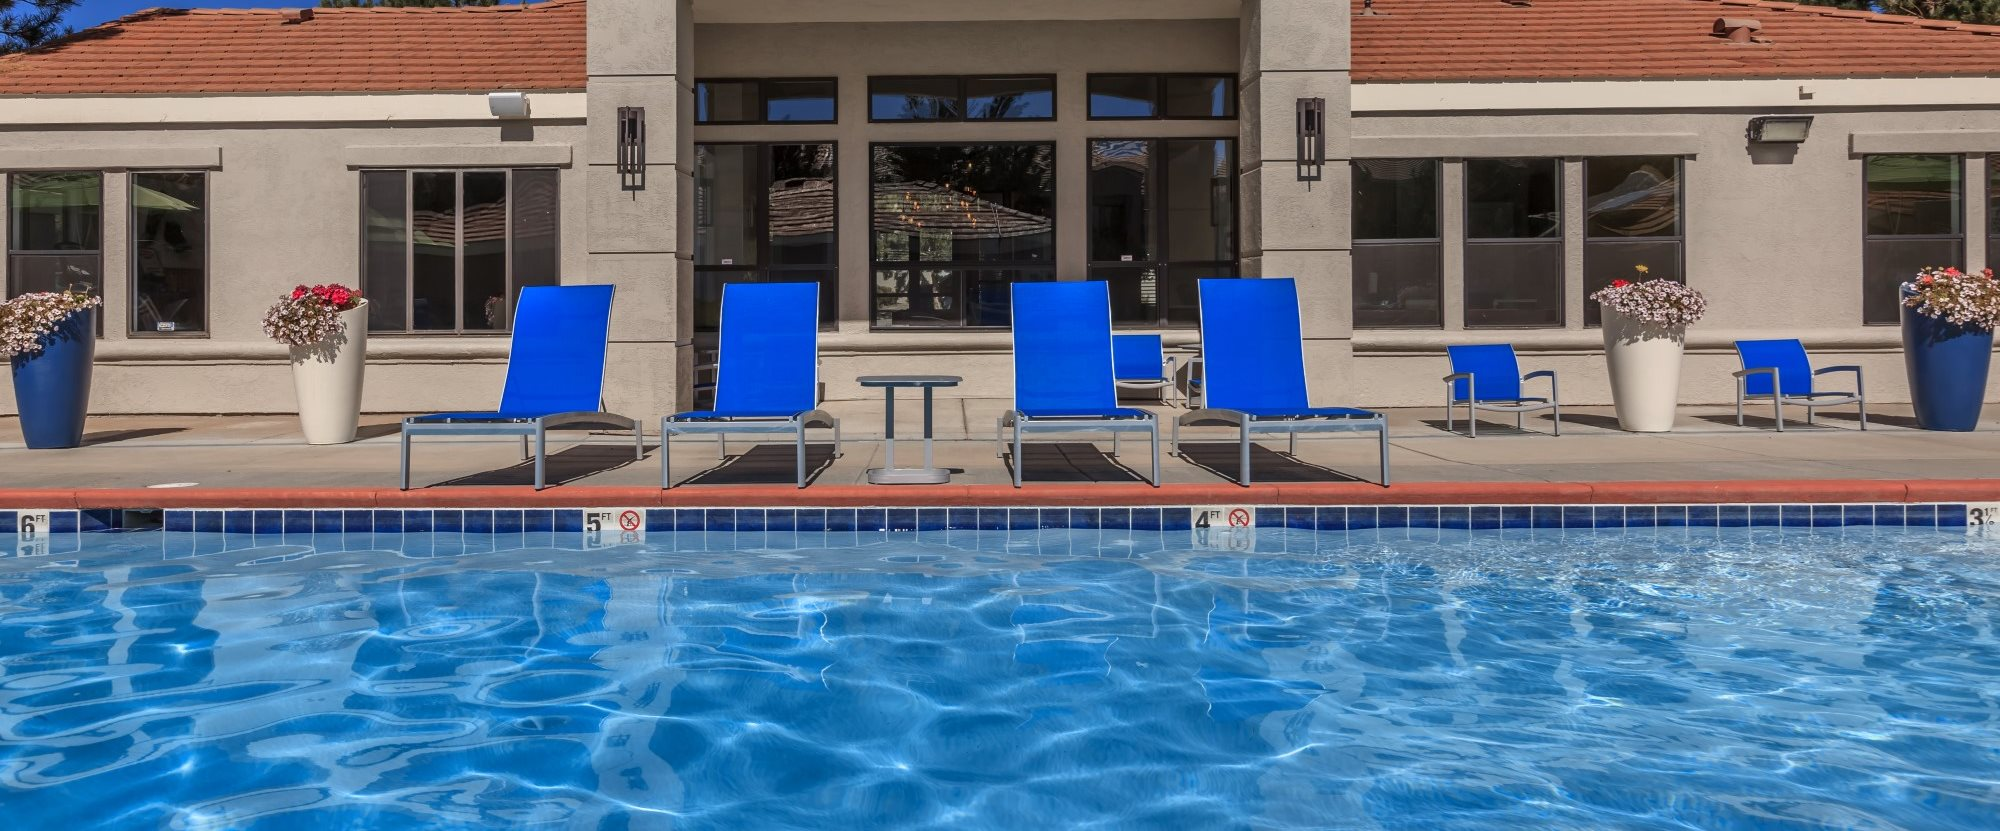 Northtowne Summit Apartments Pool and Lounge Chairs In Front Of Clubhouse